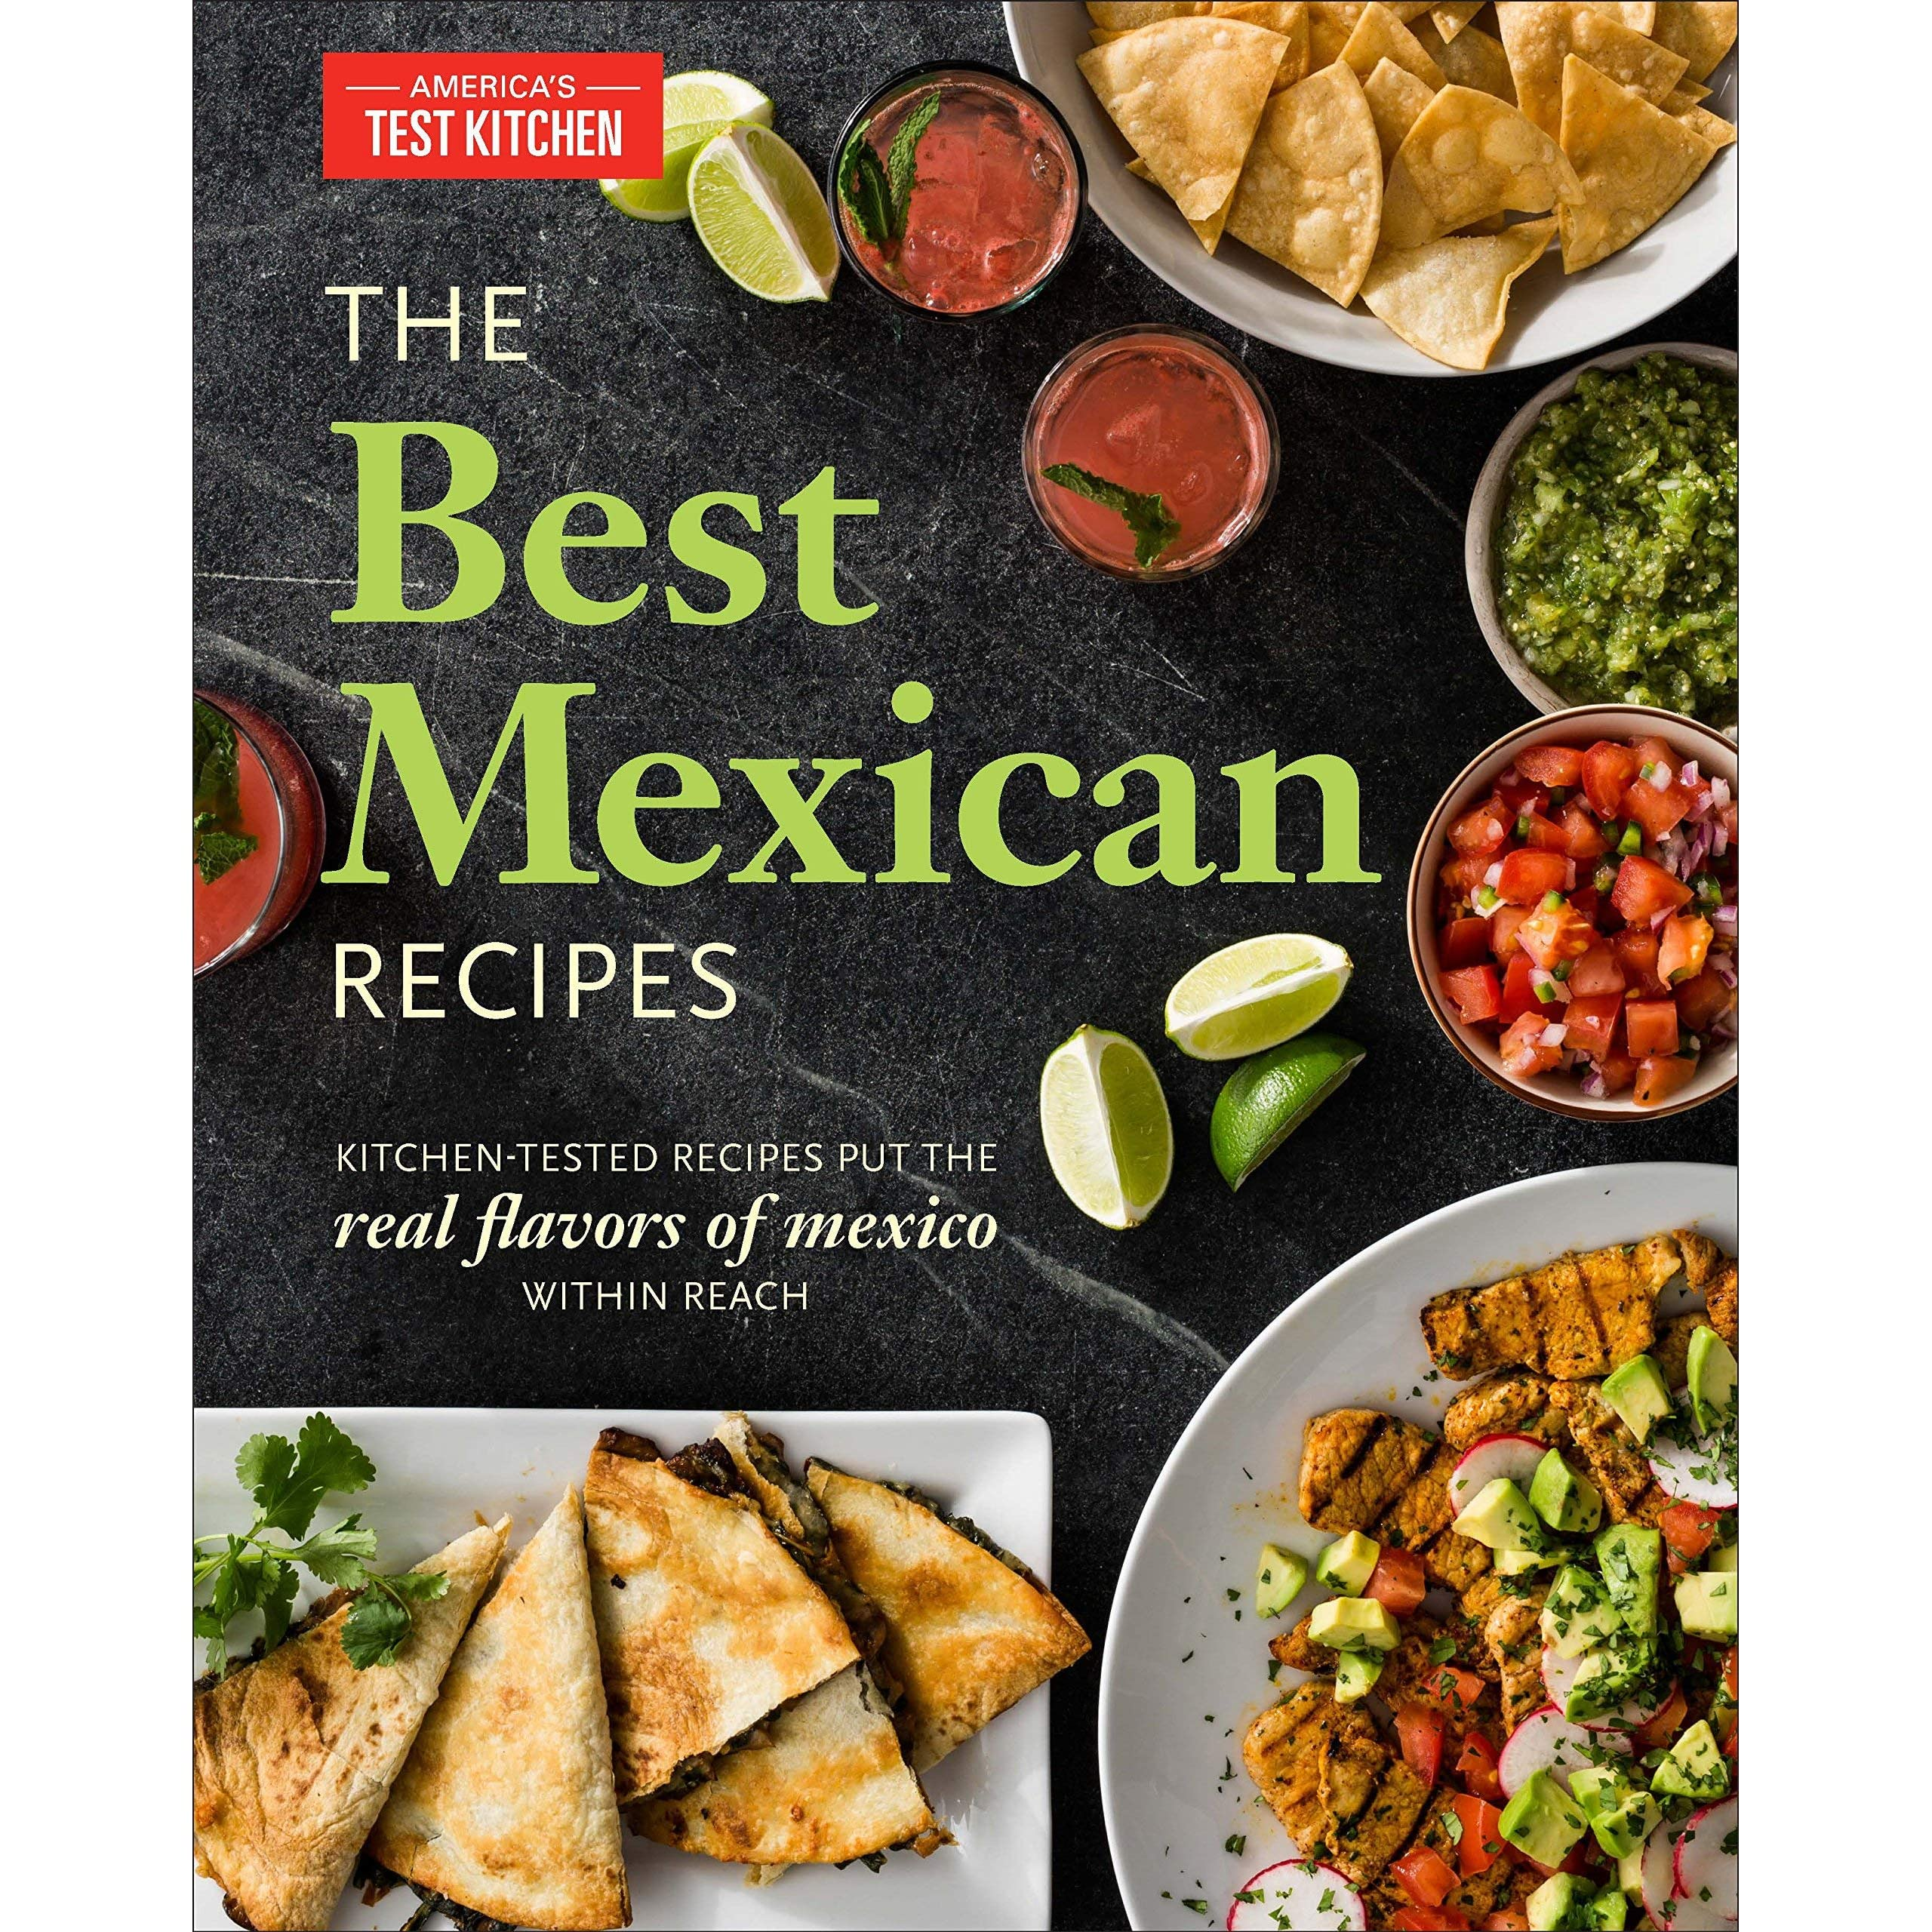 The Best Mexican Recipes Kitchen Tested Recipes Put The Real Flavors Of Mexico Within Reach By America S Test Kitchen